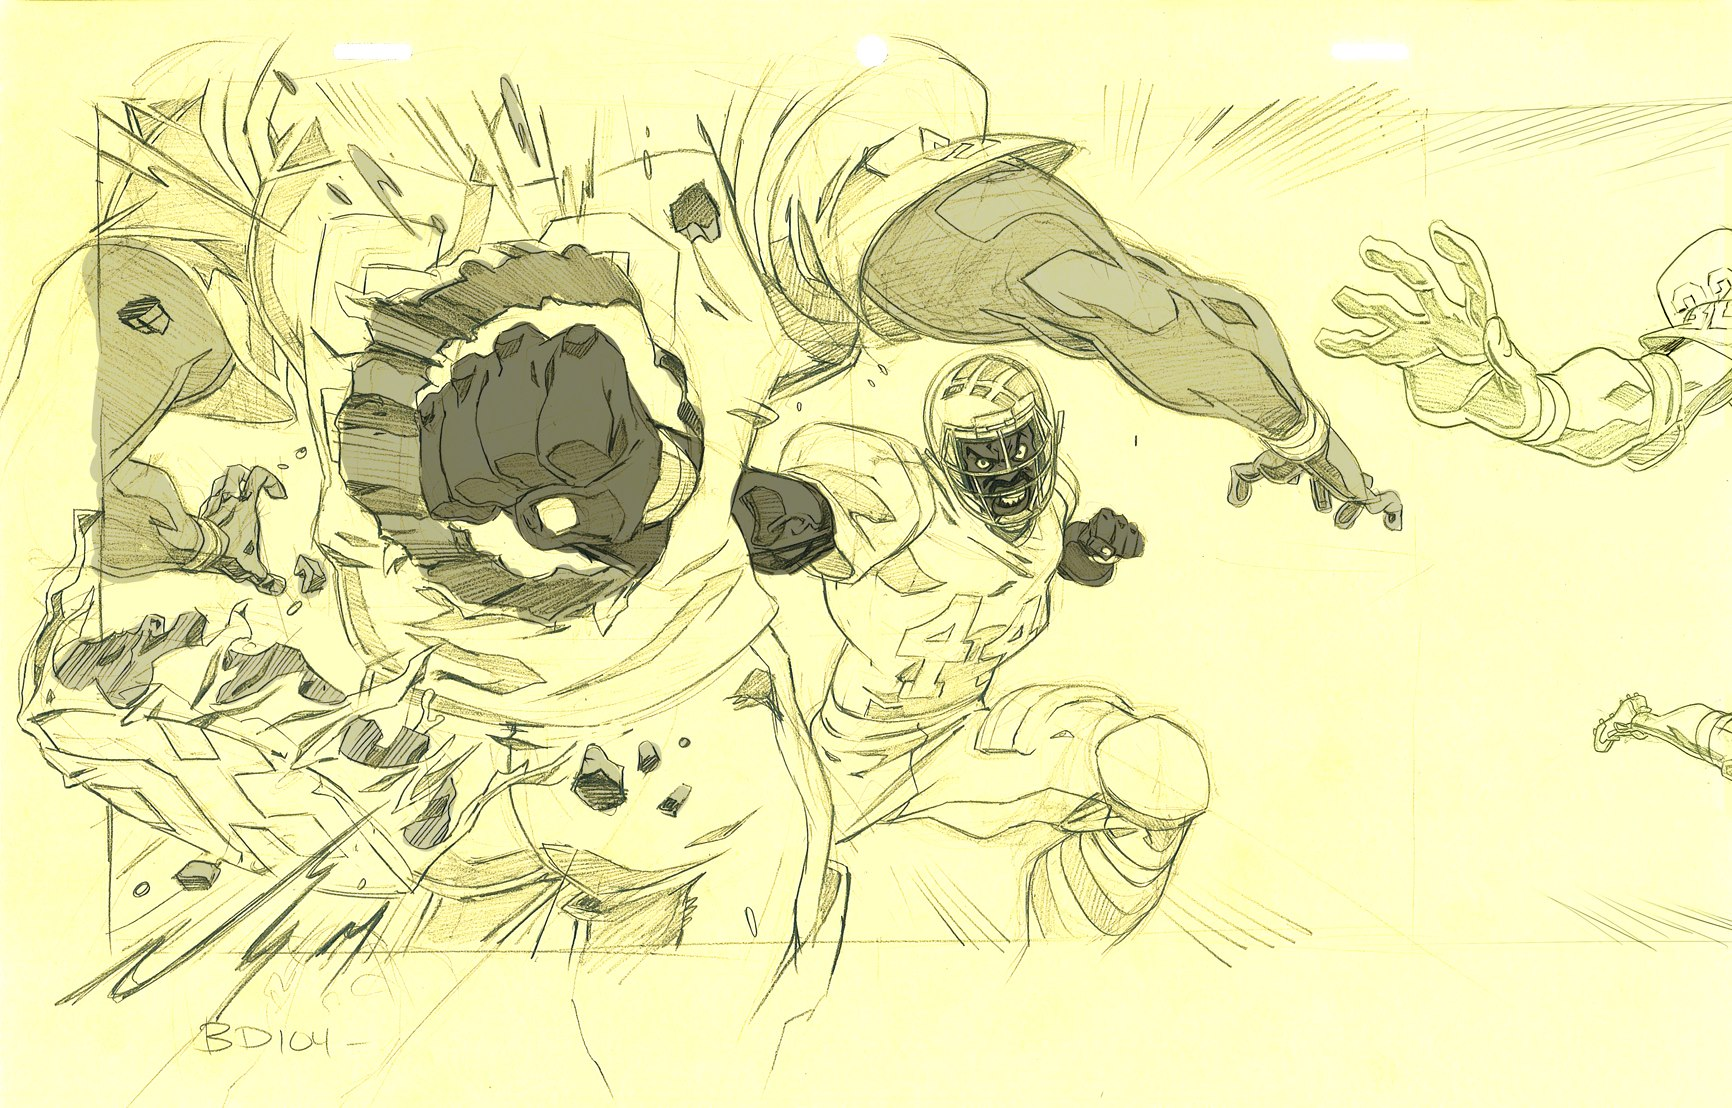 Black Dynamite: It was just a game 2 rough by ChaseConley